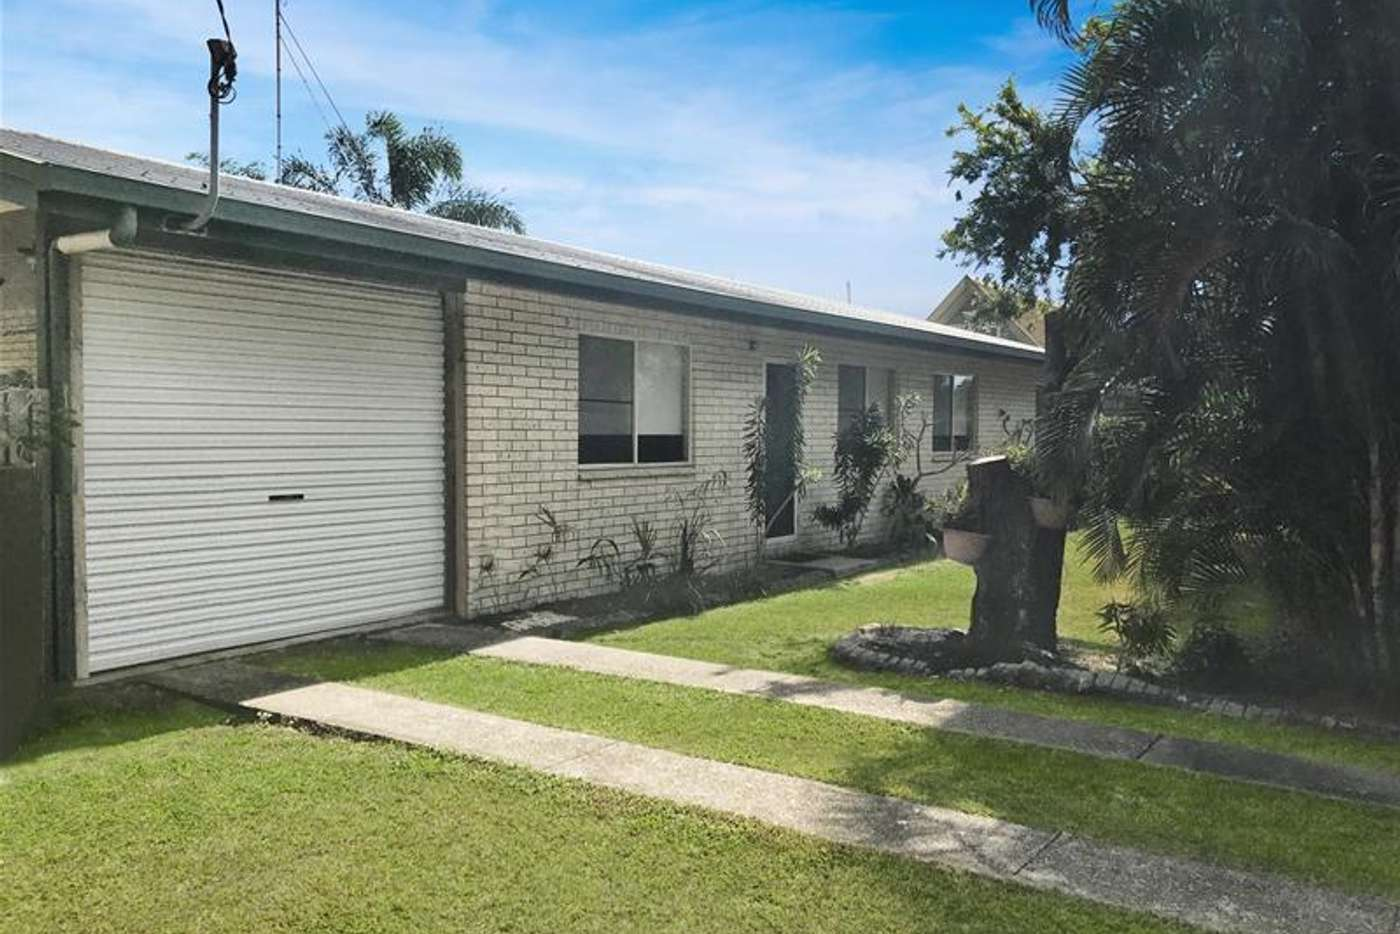 Main view of Homely house listing, 30 Campwin Beach Road, Campwin Beach QLD 4737